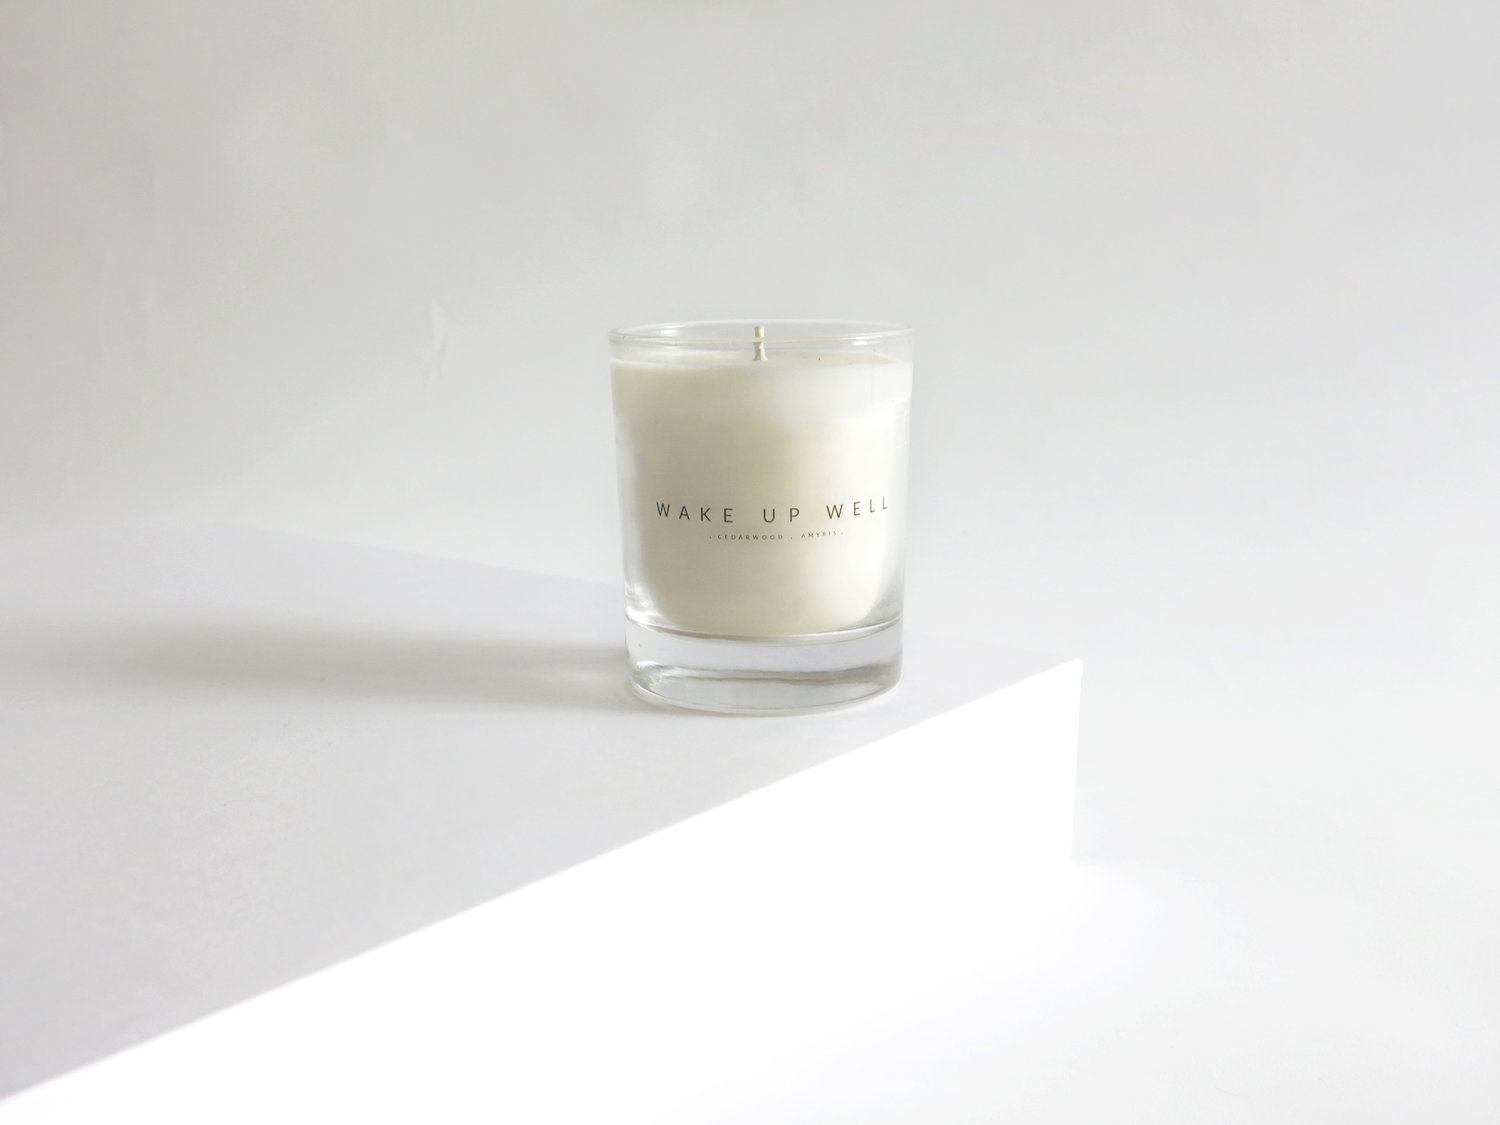 Copy of Wake Up Well Candle